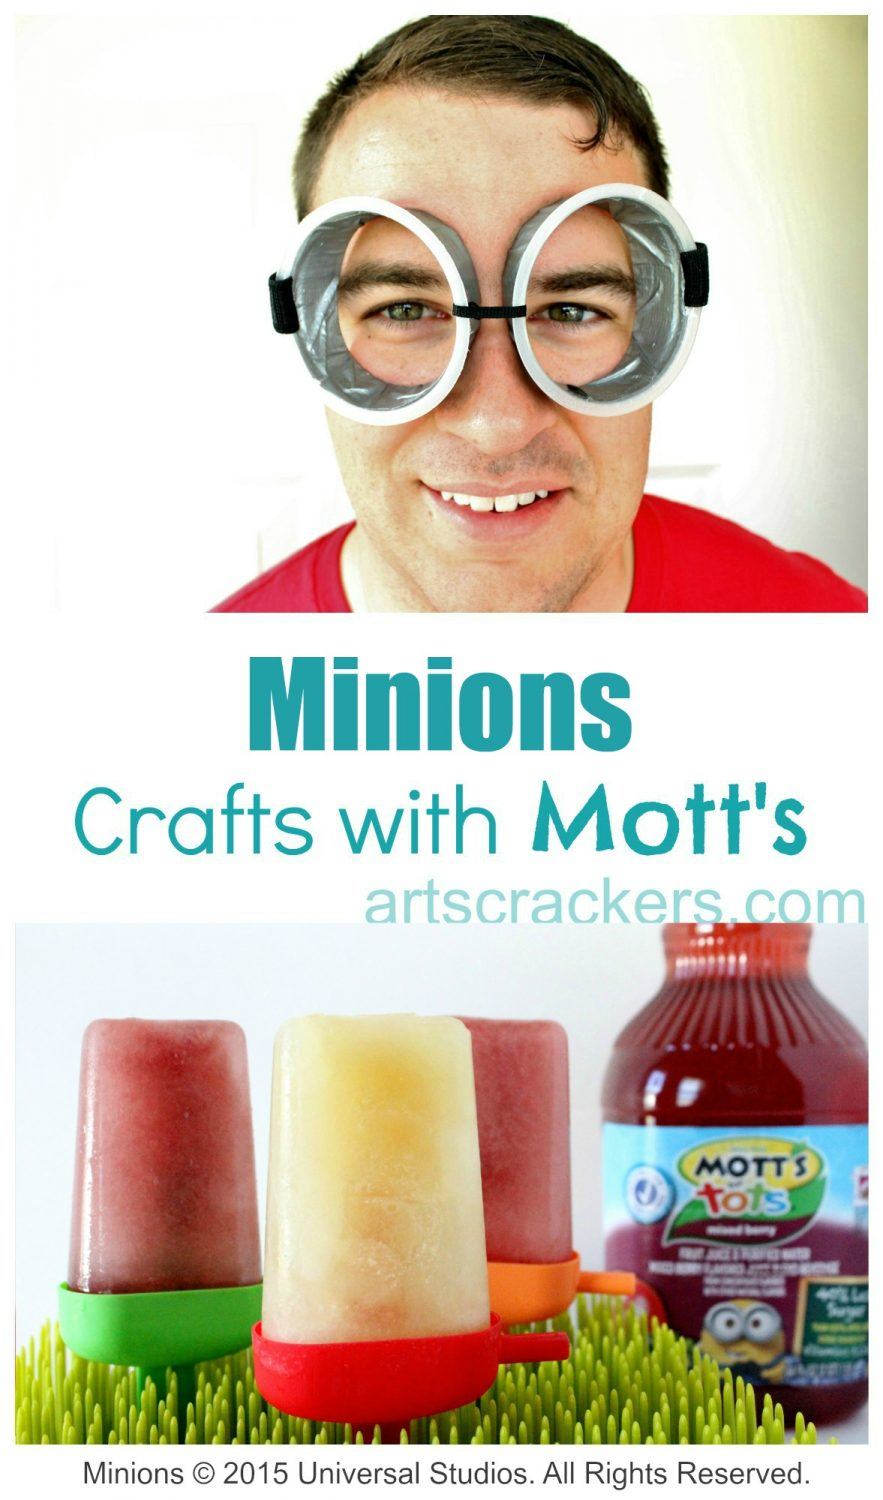 Minions Crafts with Motts. Click the picture to view the tutorial.